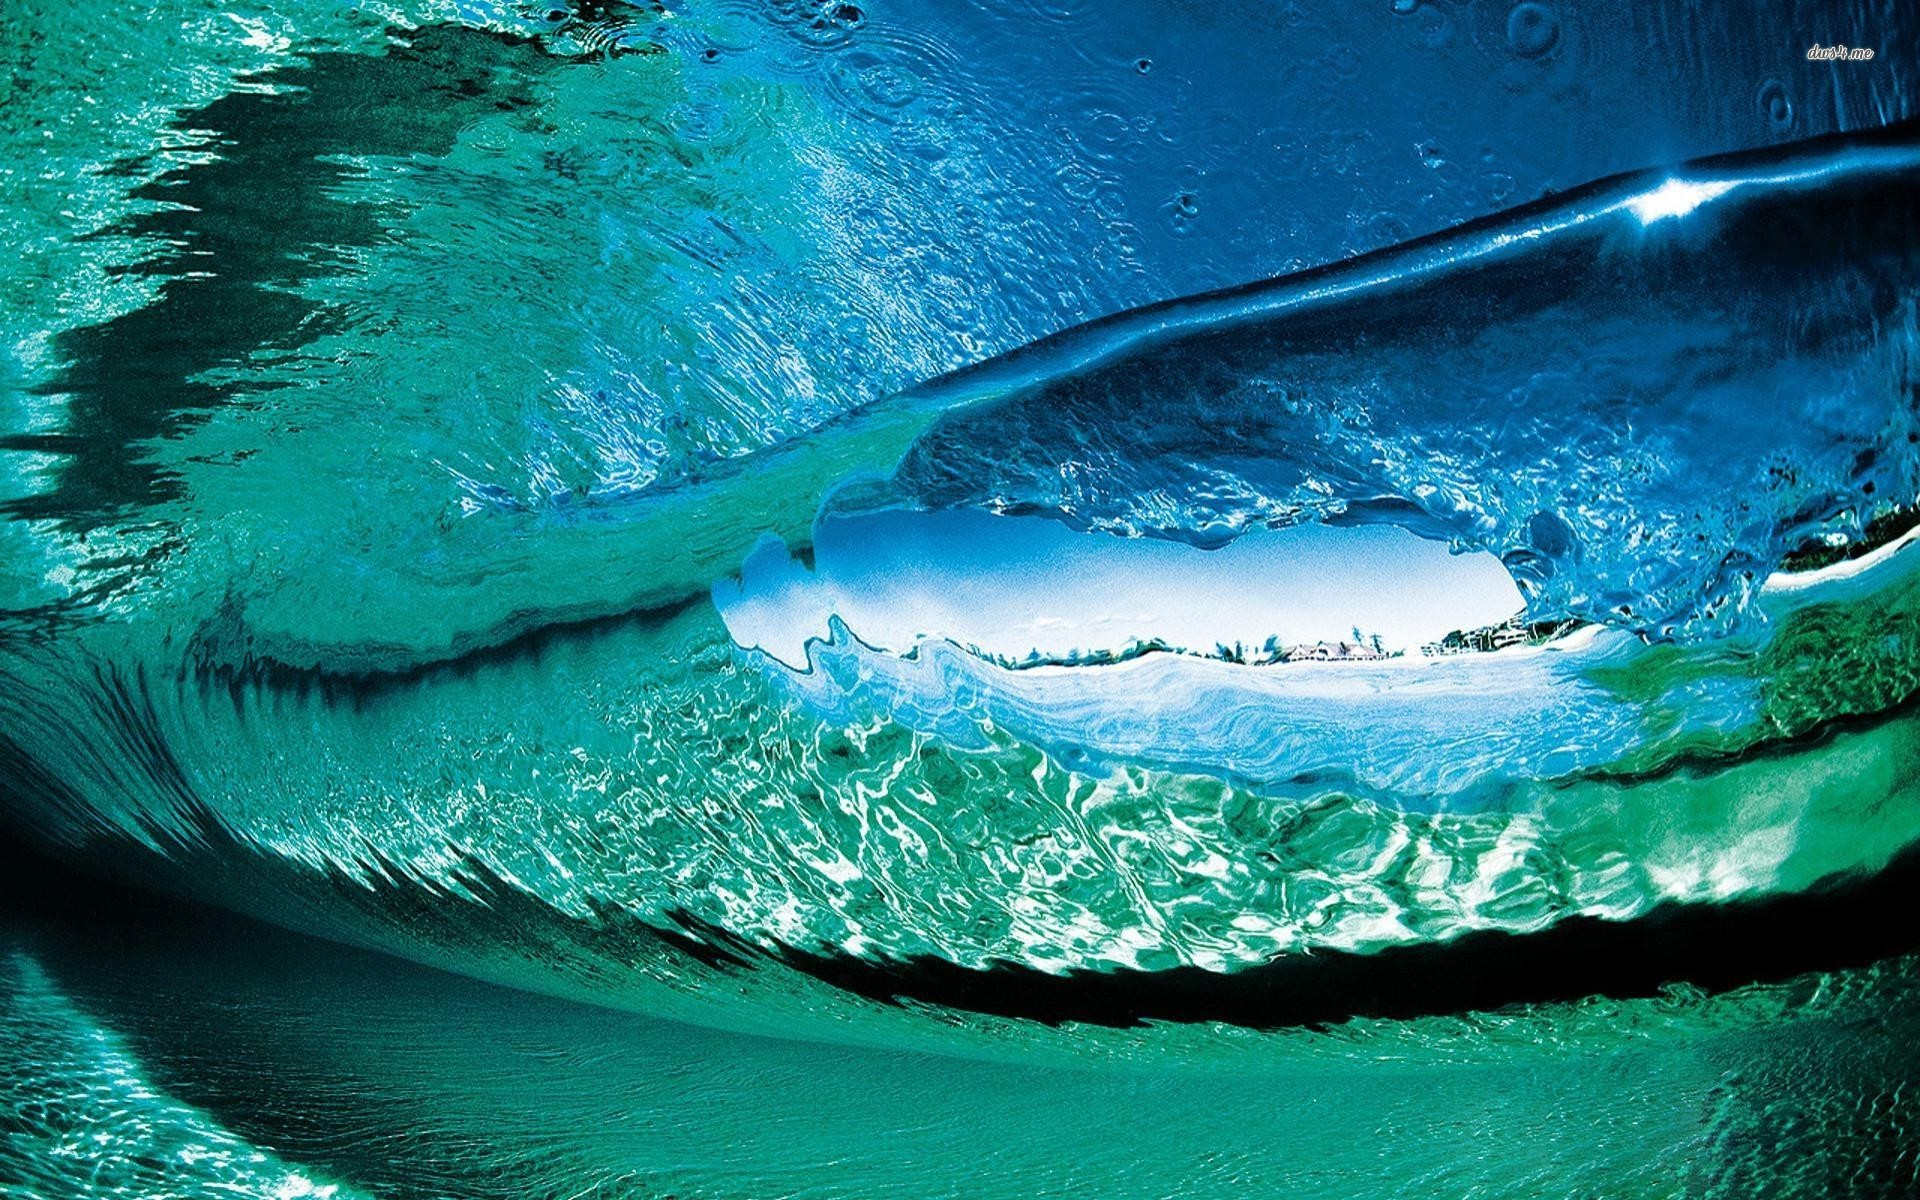 Wave Hd Wallpaper Posted By Ryan Thompson